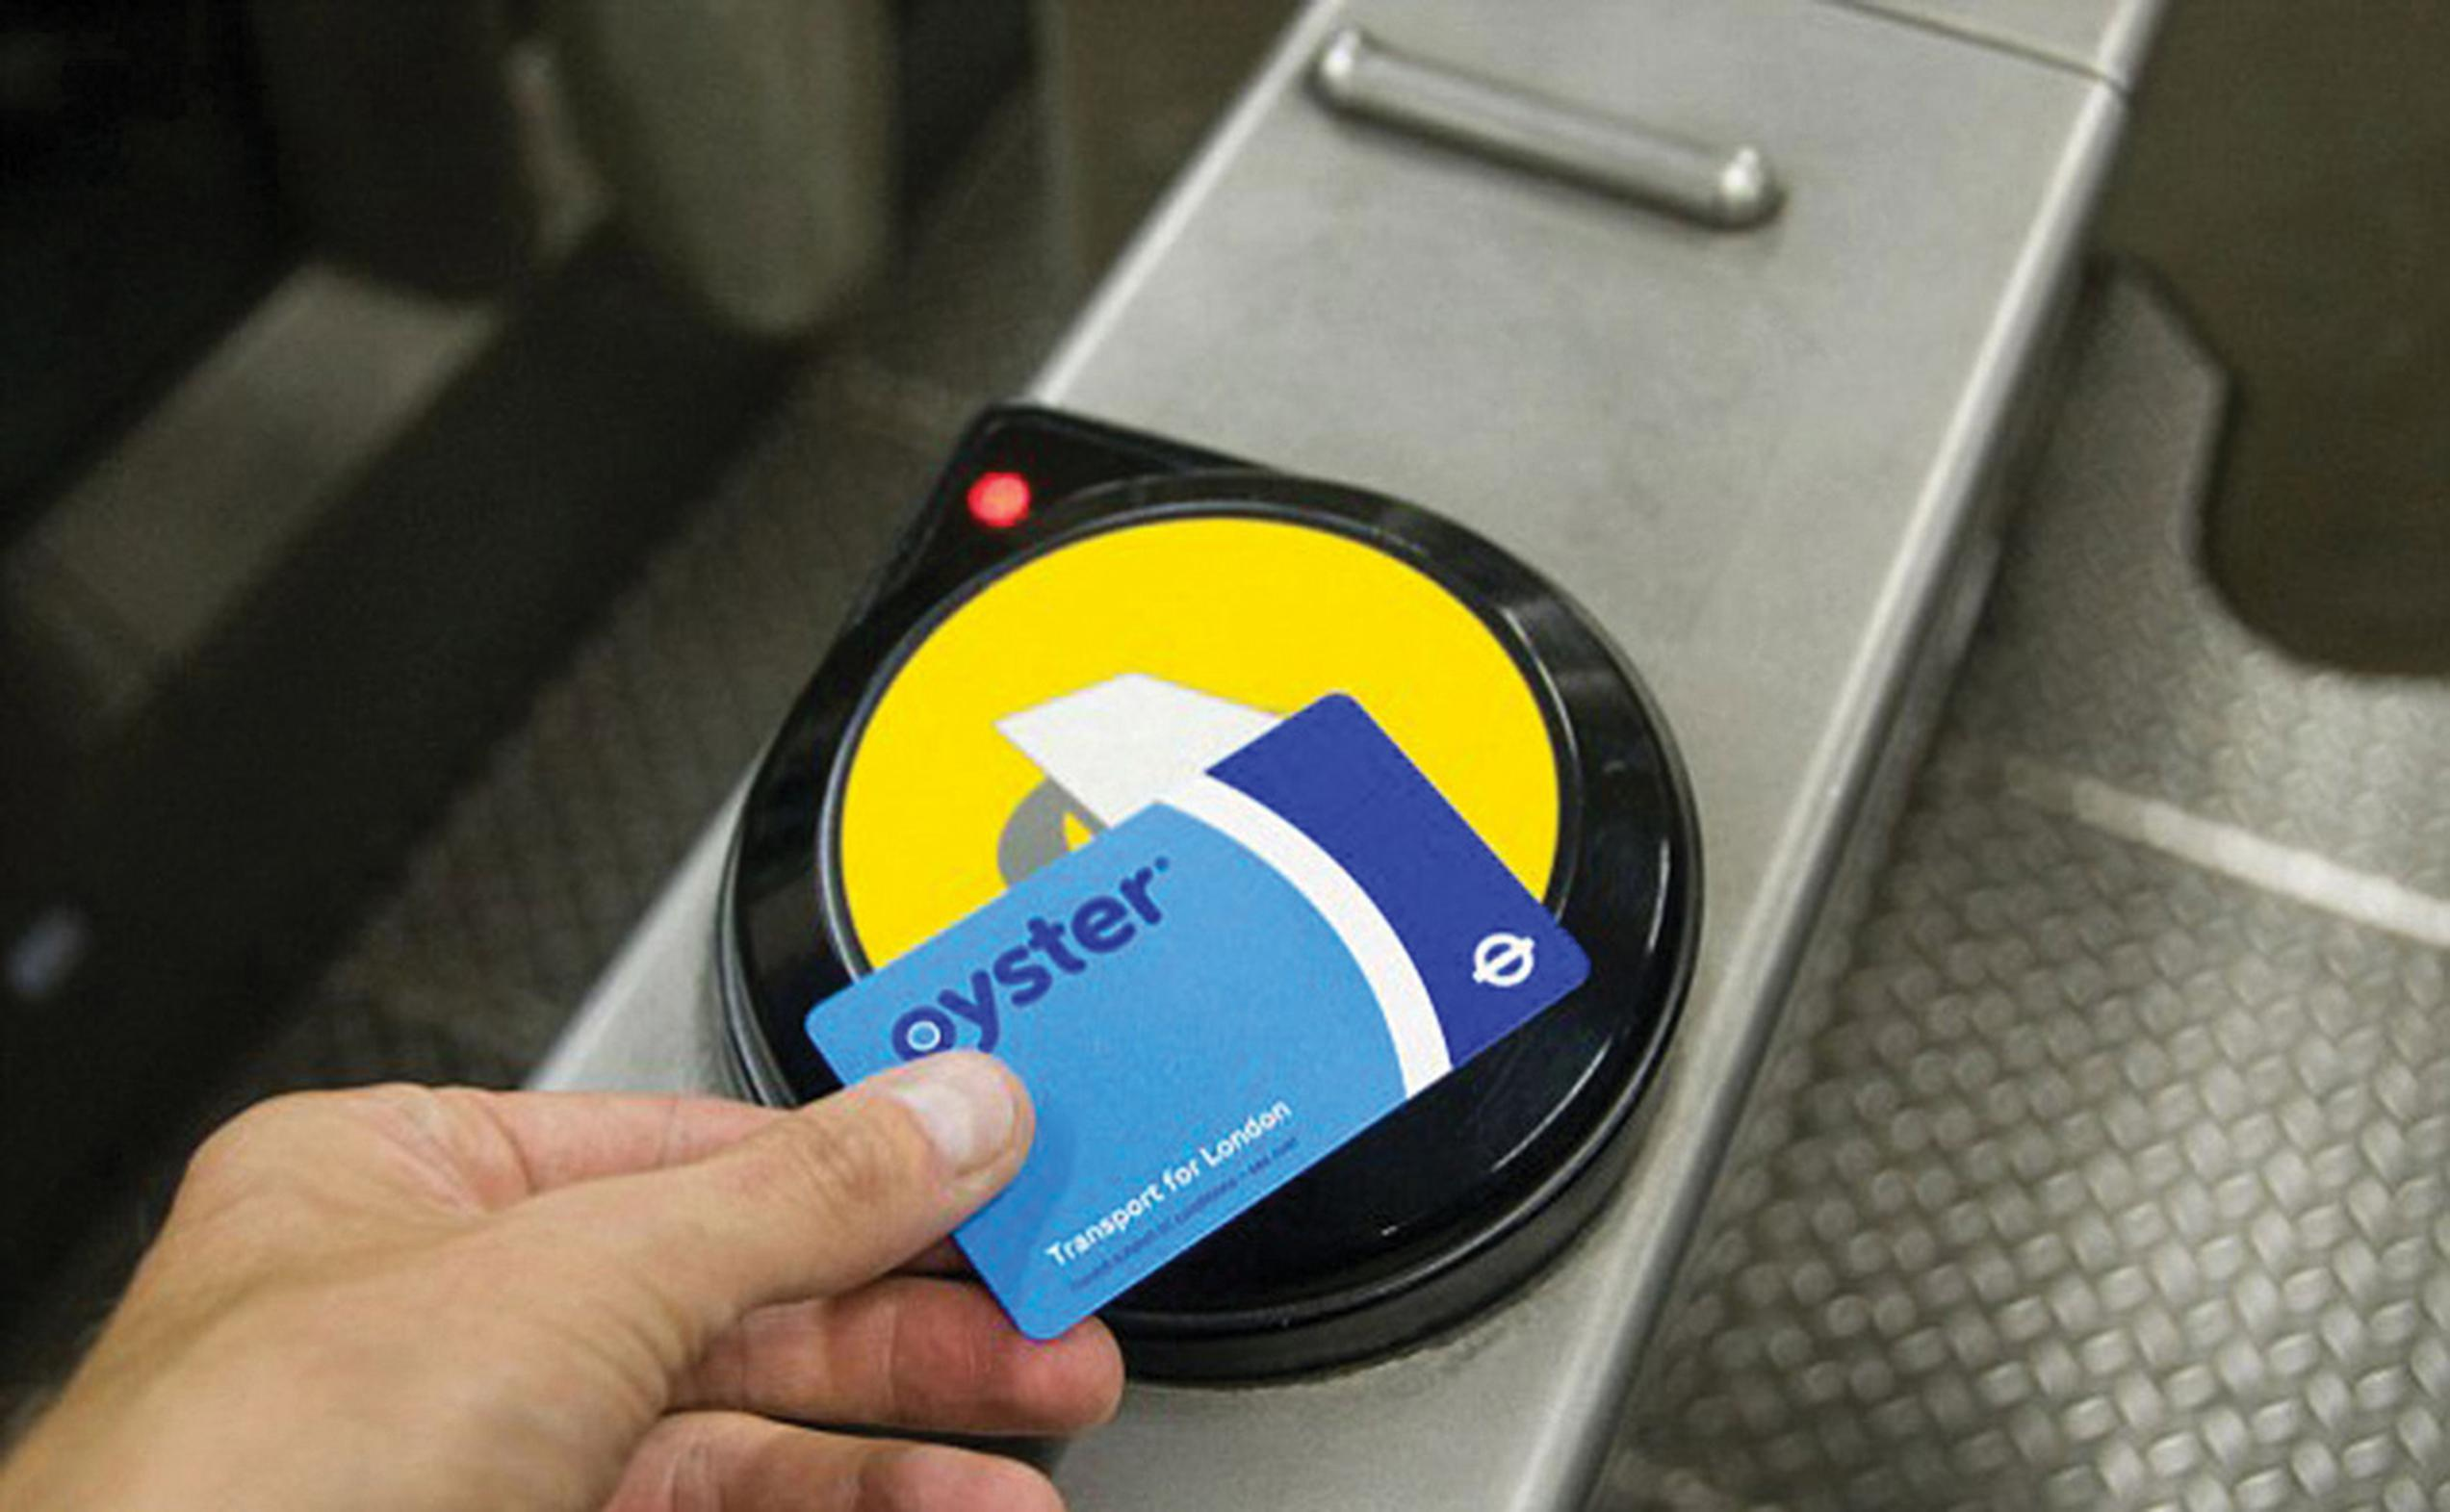 Personal data held by TfL includes records generated by millions of Oyster card holders